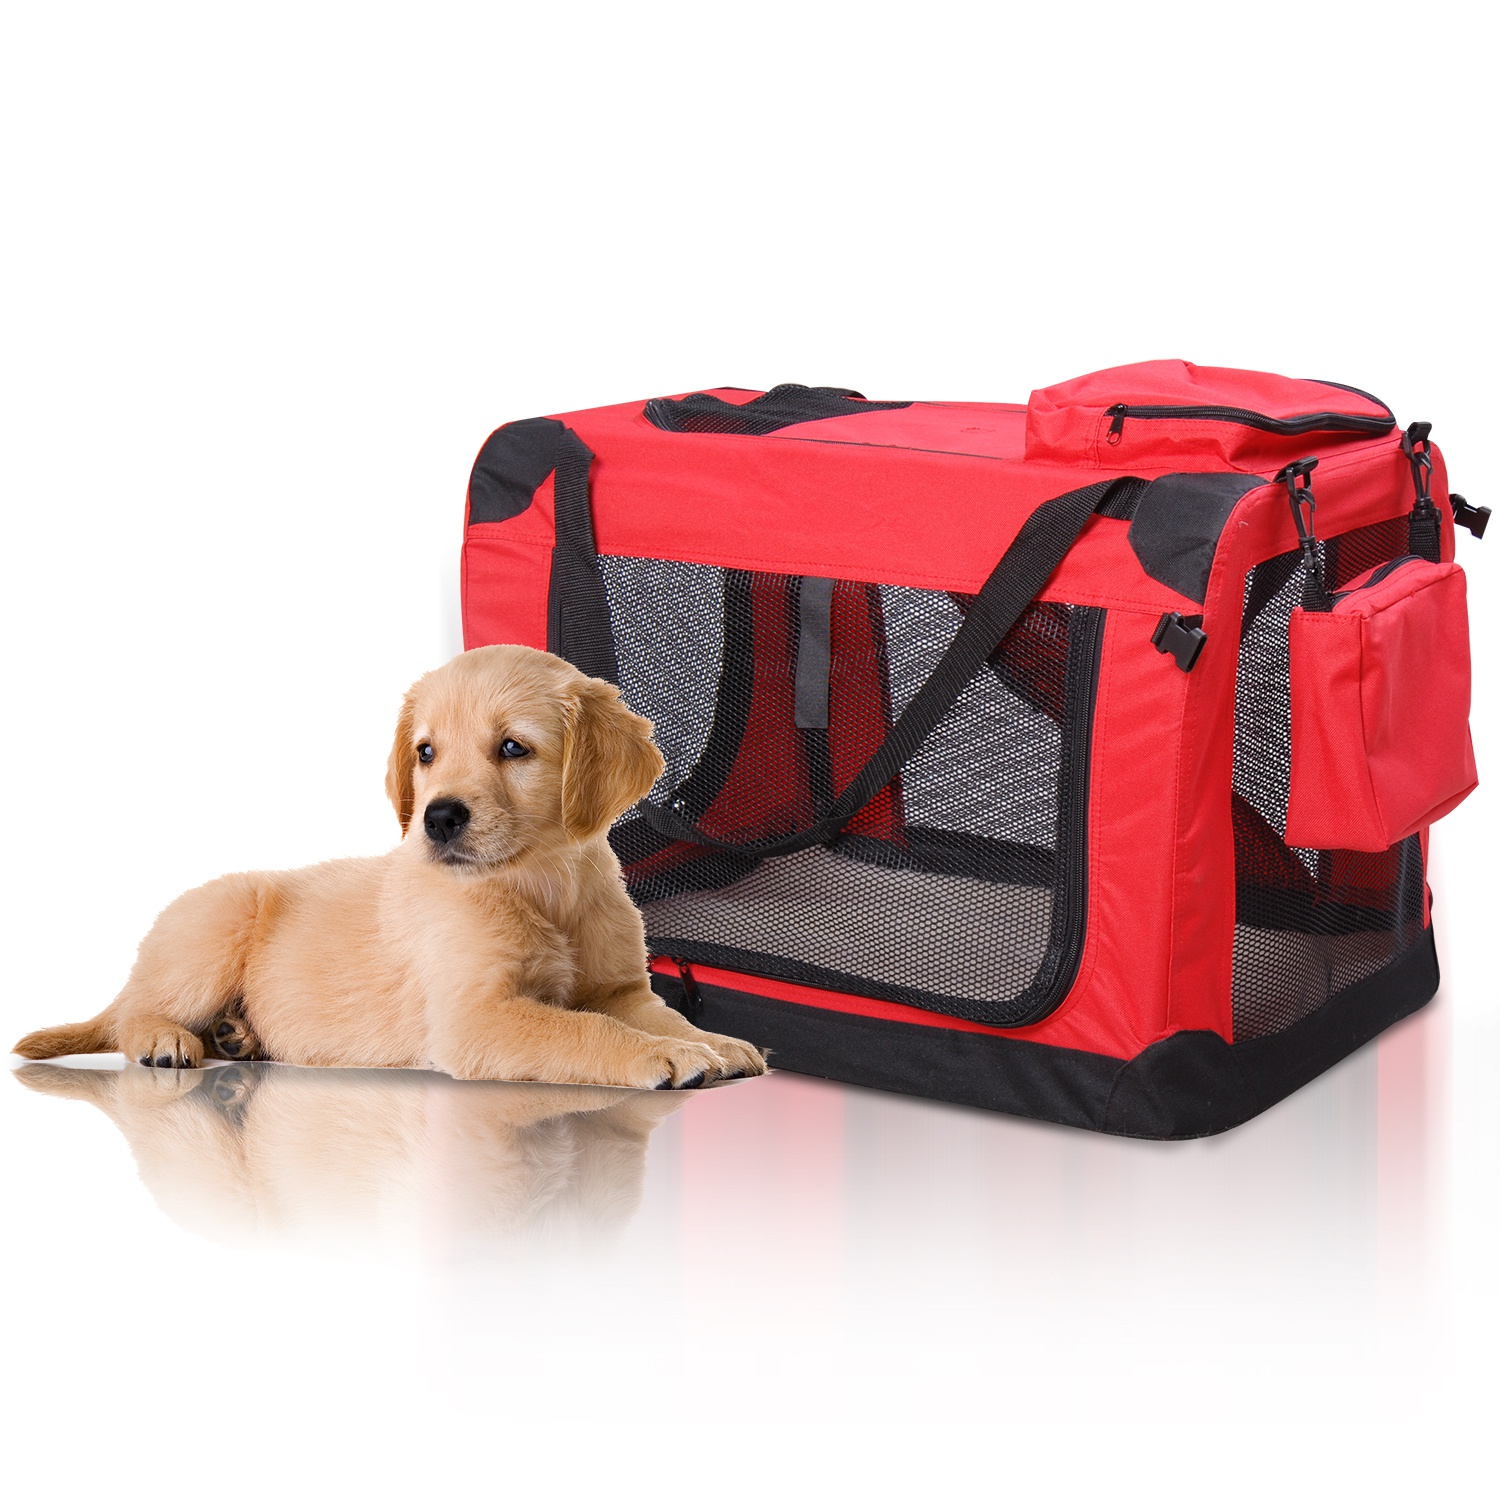 Dog Carriers & Strollers